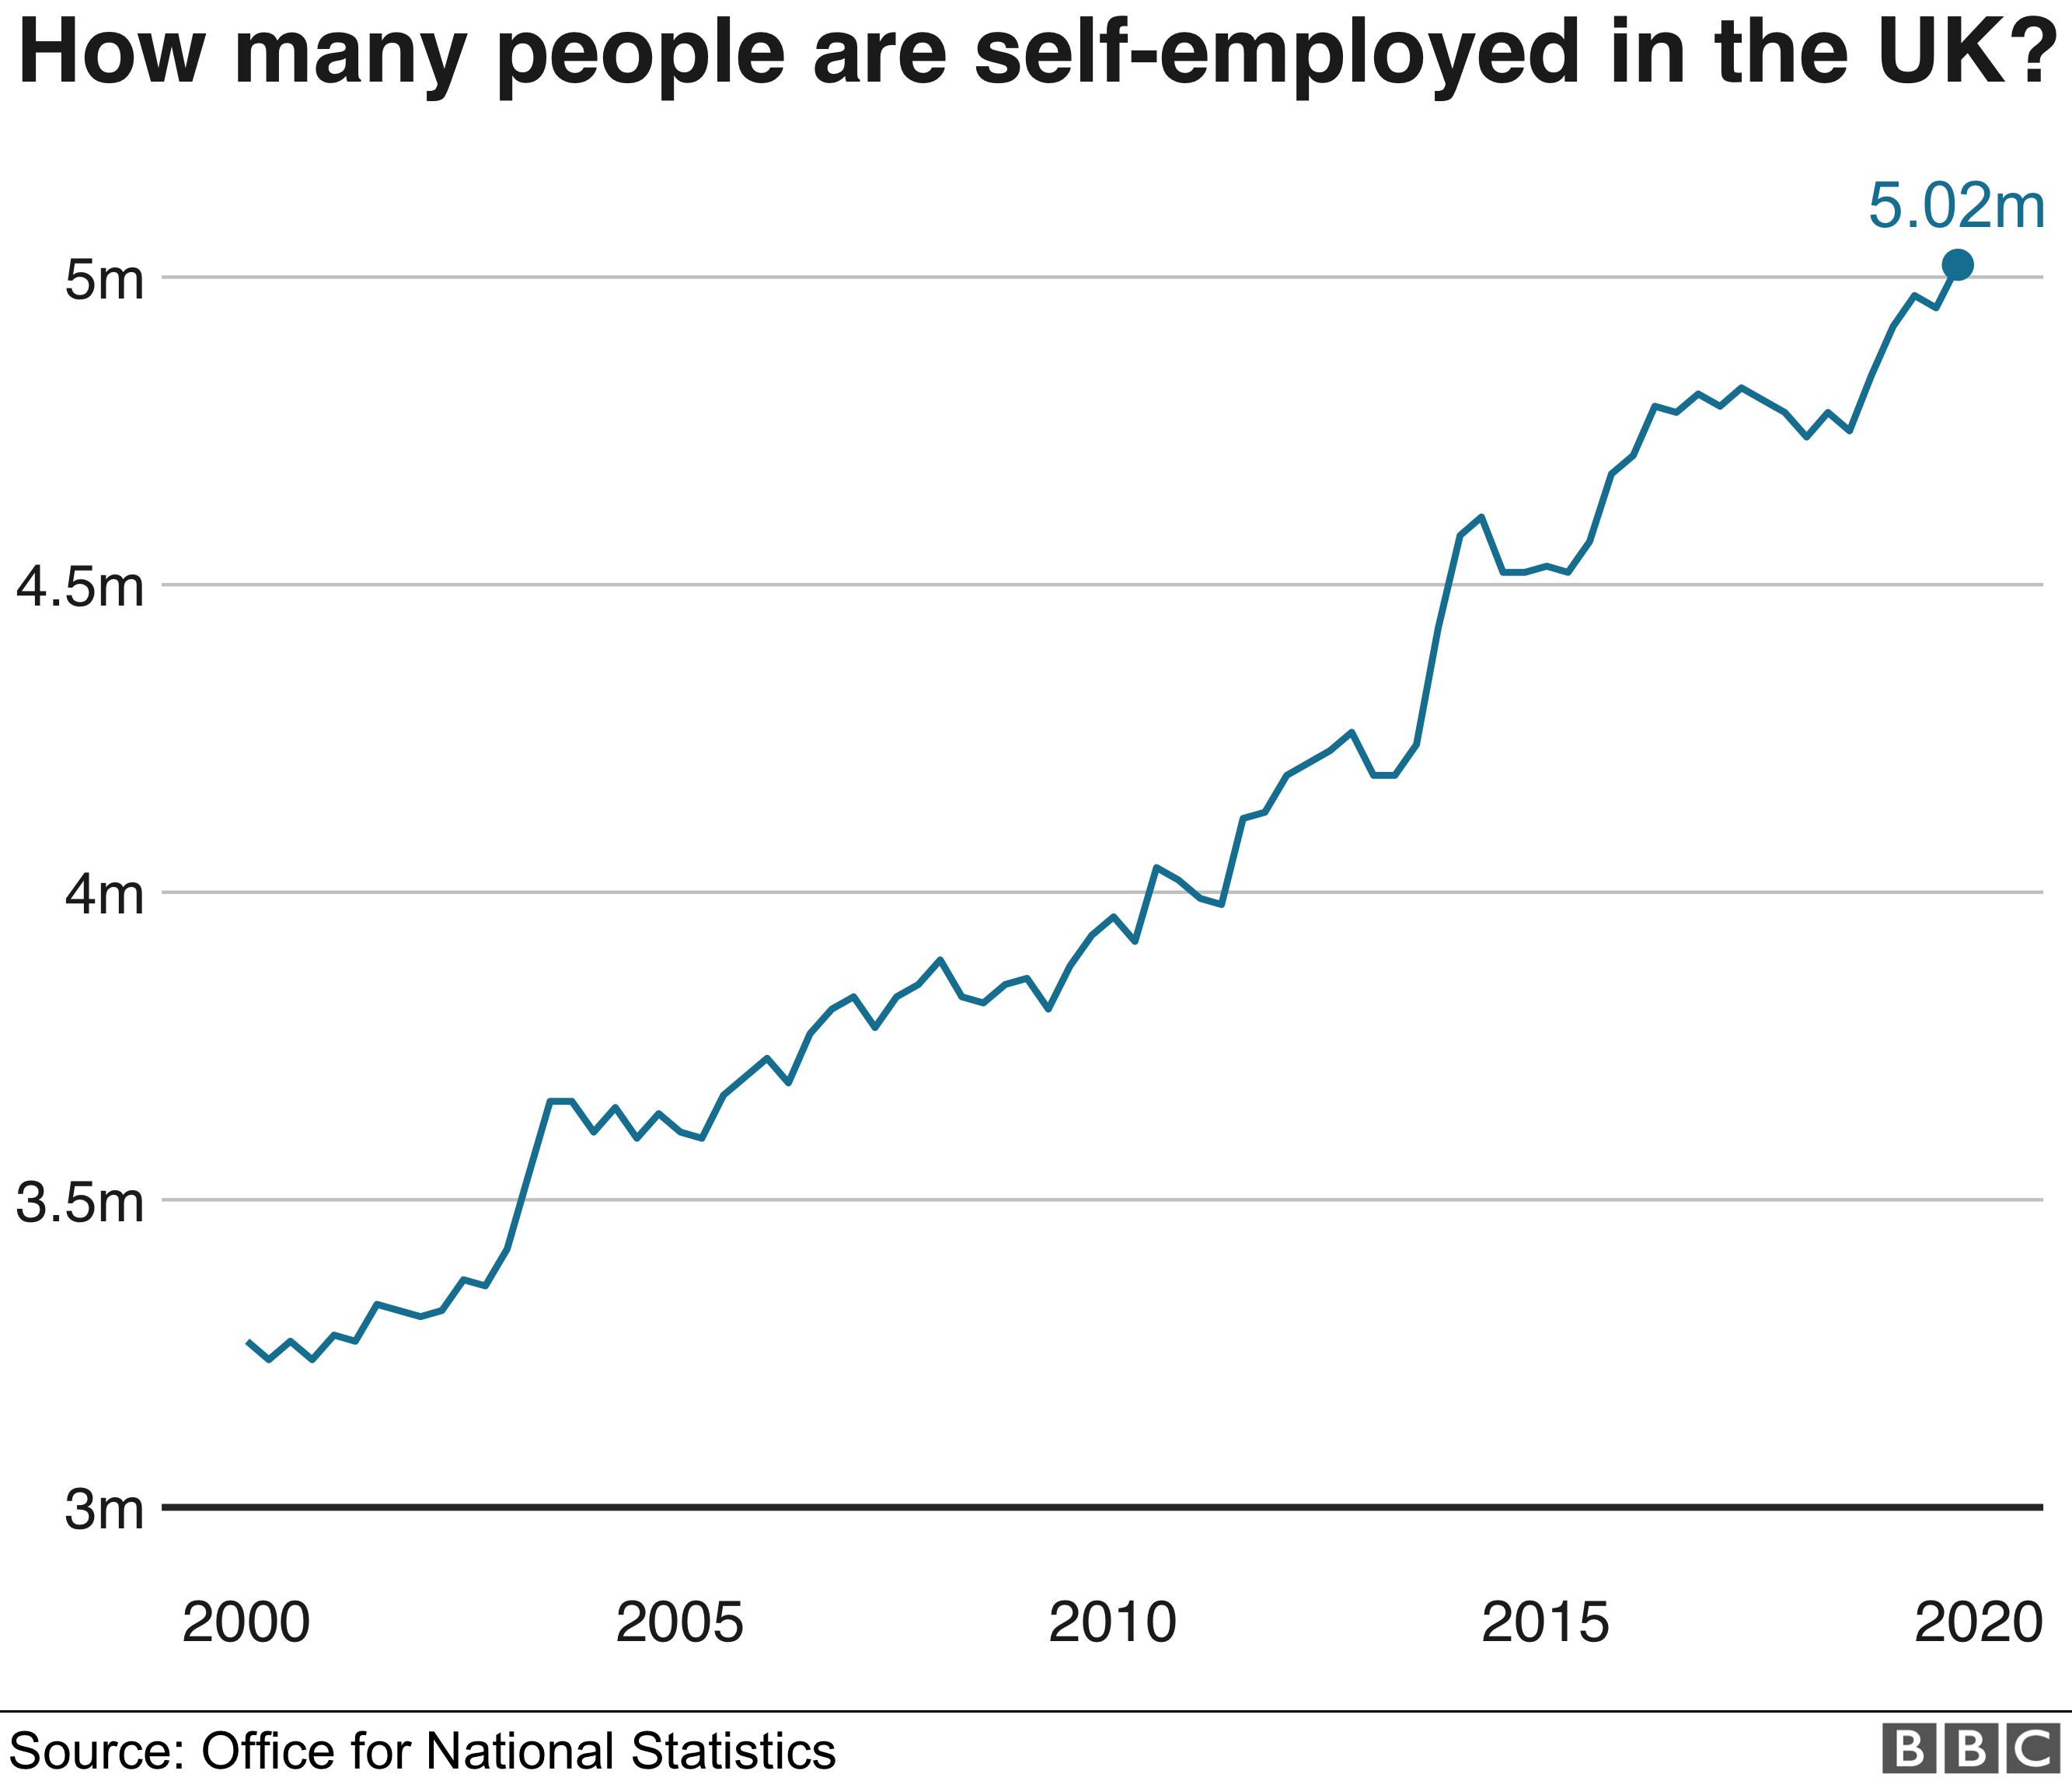 Chart showing self-employed numbers in UK